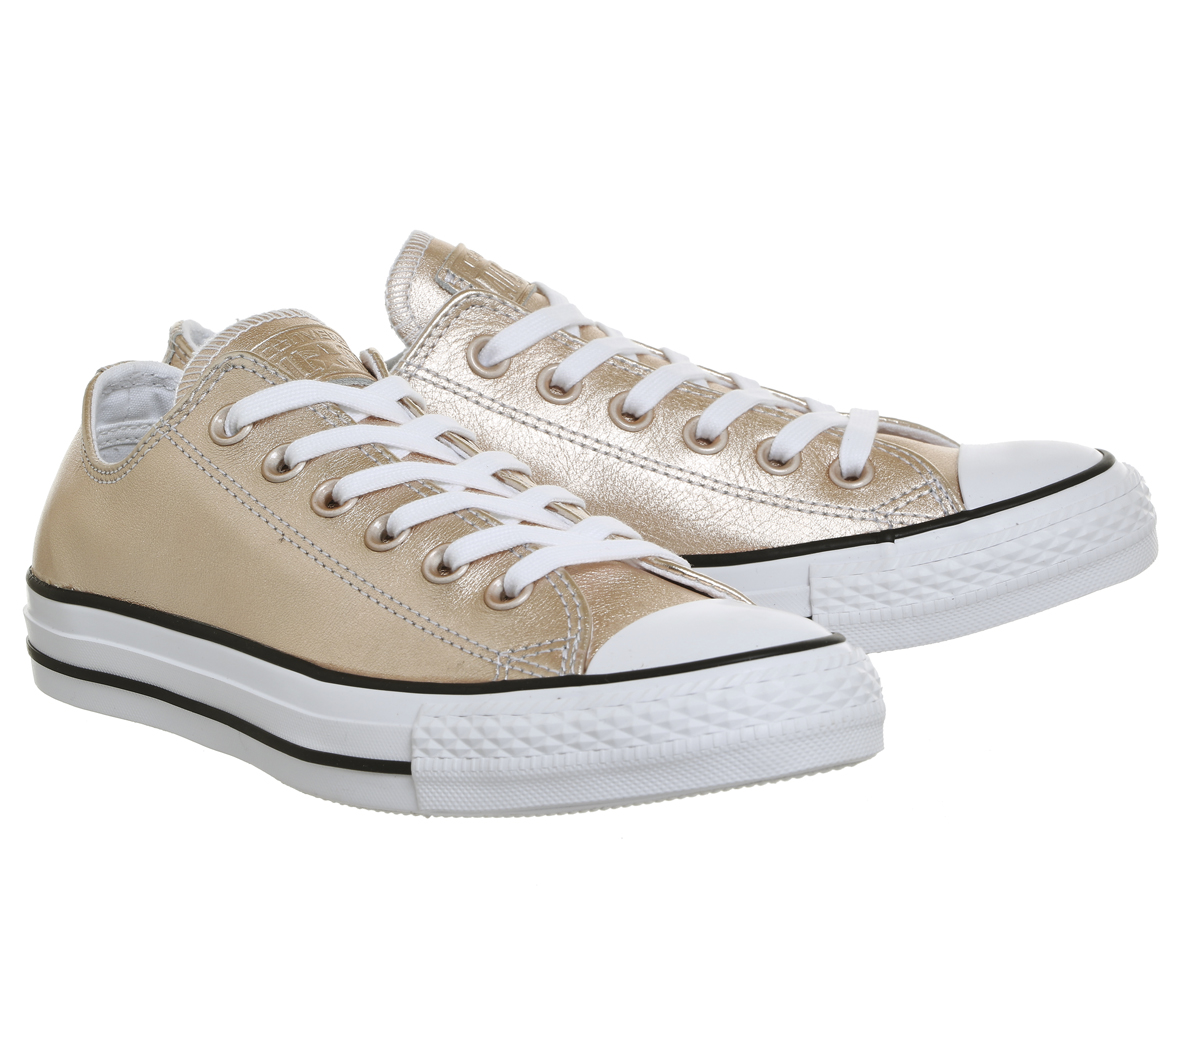 bce0838cc3bfac Sentinel Womens Converse All Star Low Leather Trainers Blush Gold Trainers  Shoes